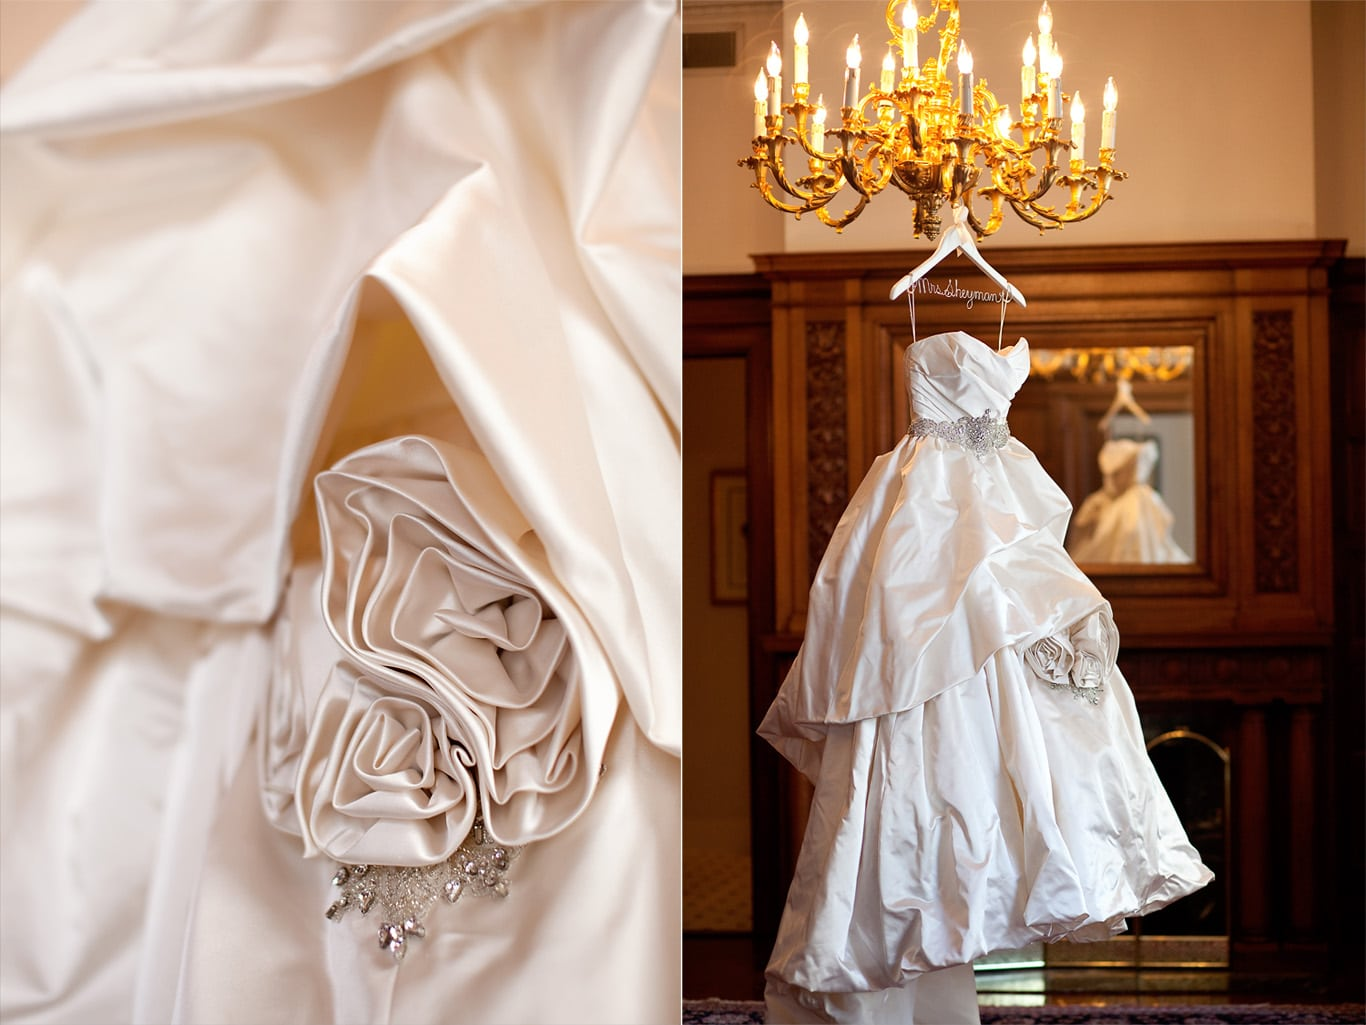 Palace Hotel Wedding Dress